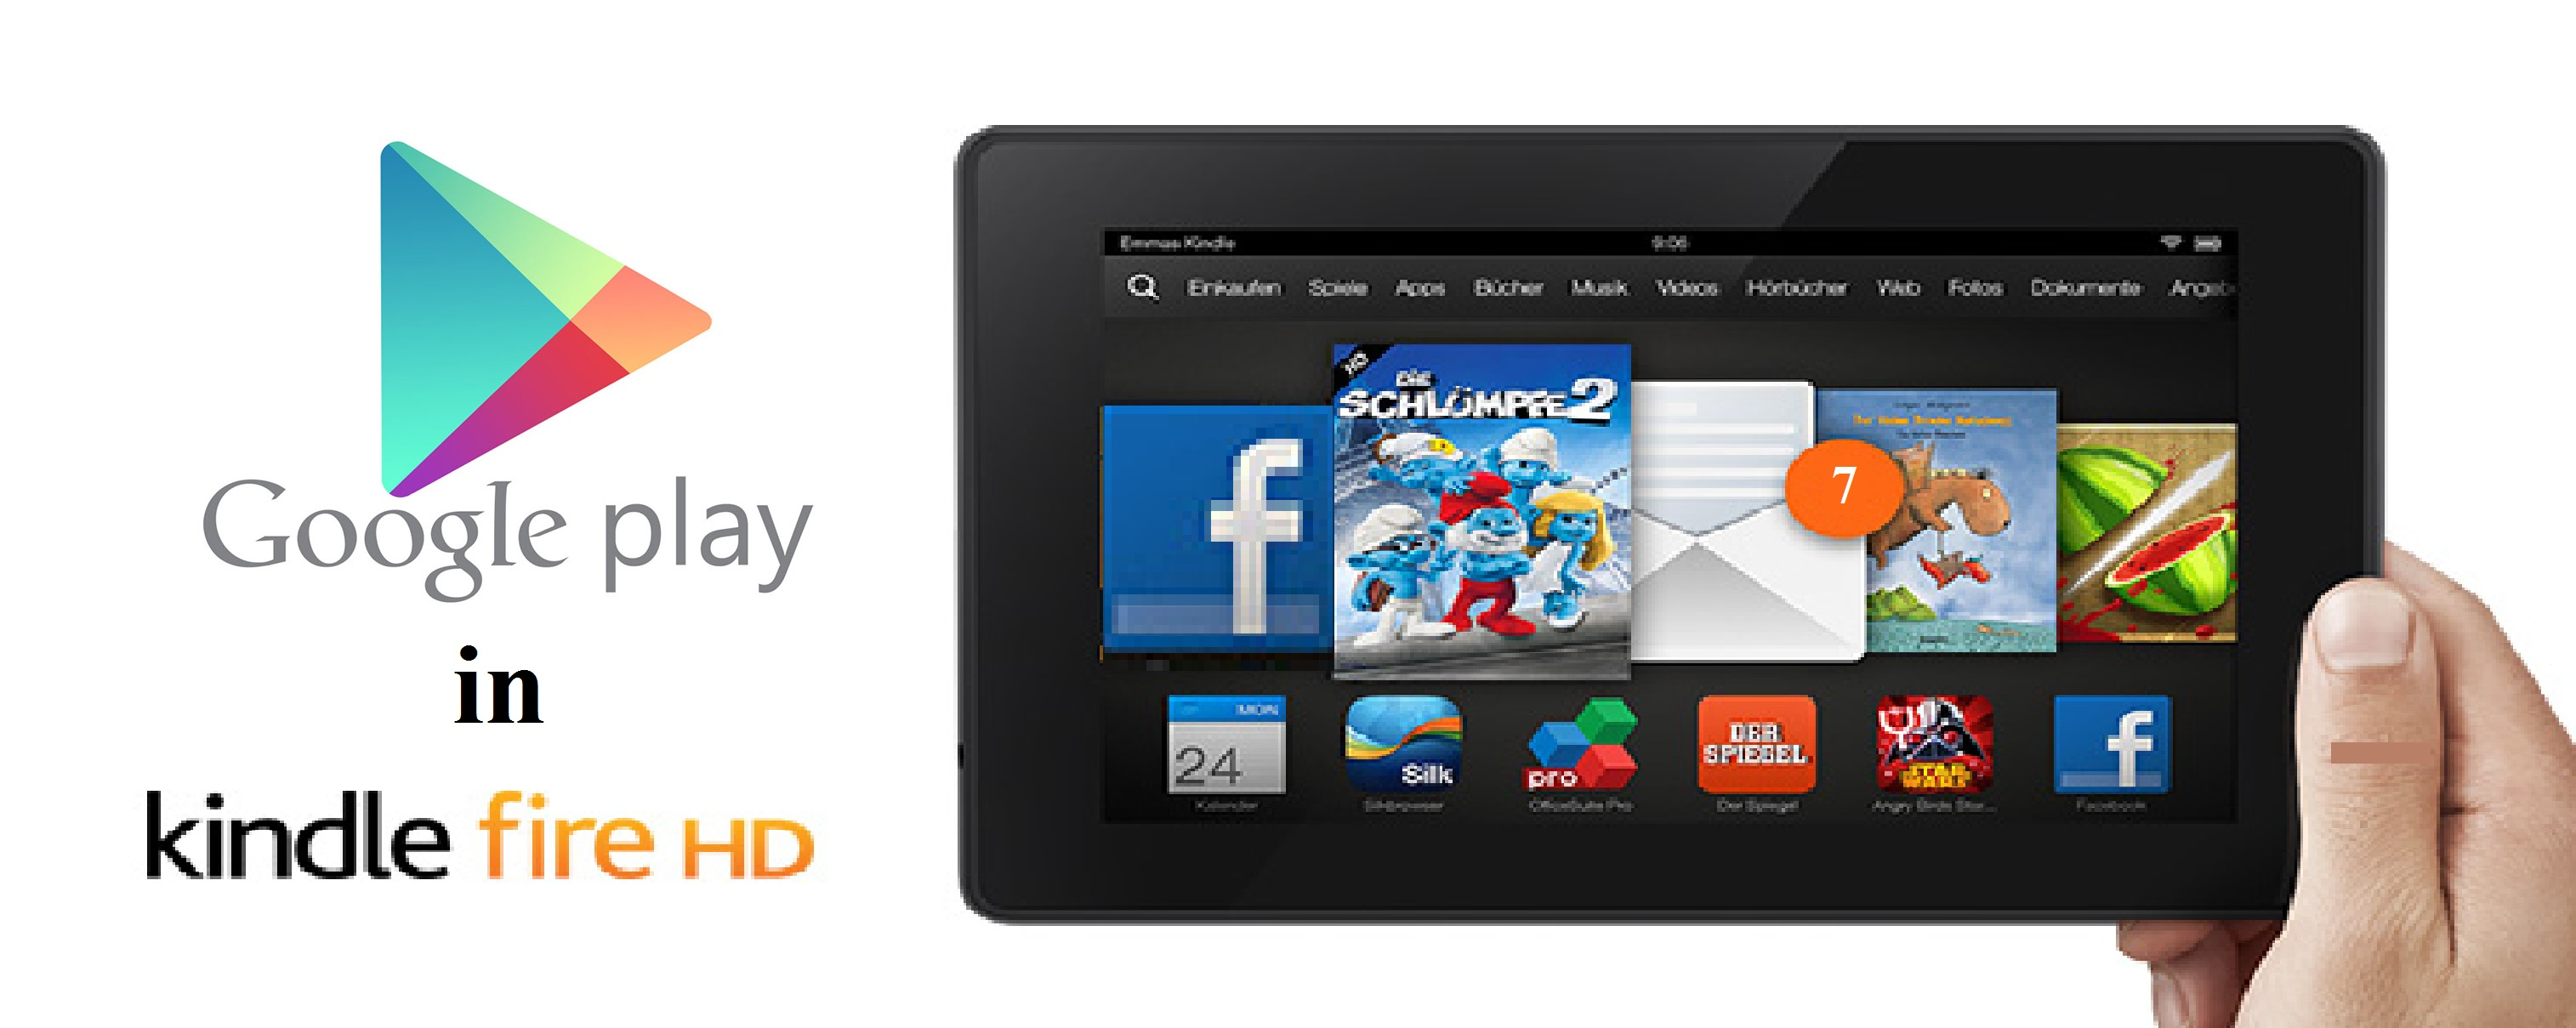 Installing Google Play On Kindle Fire And Remove